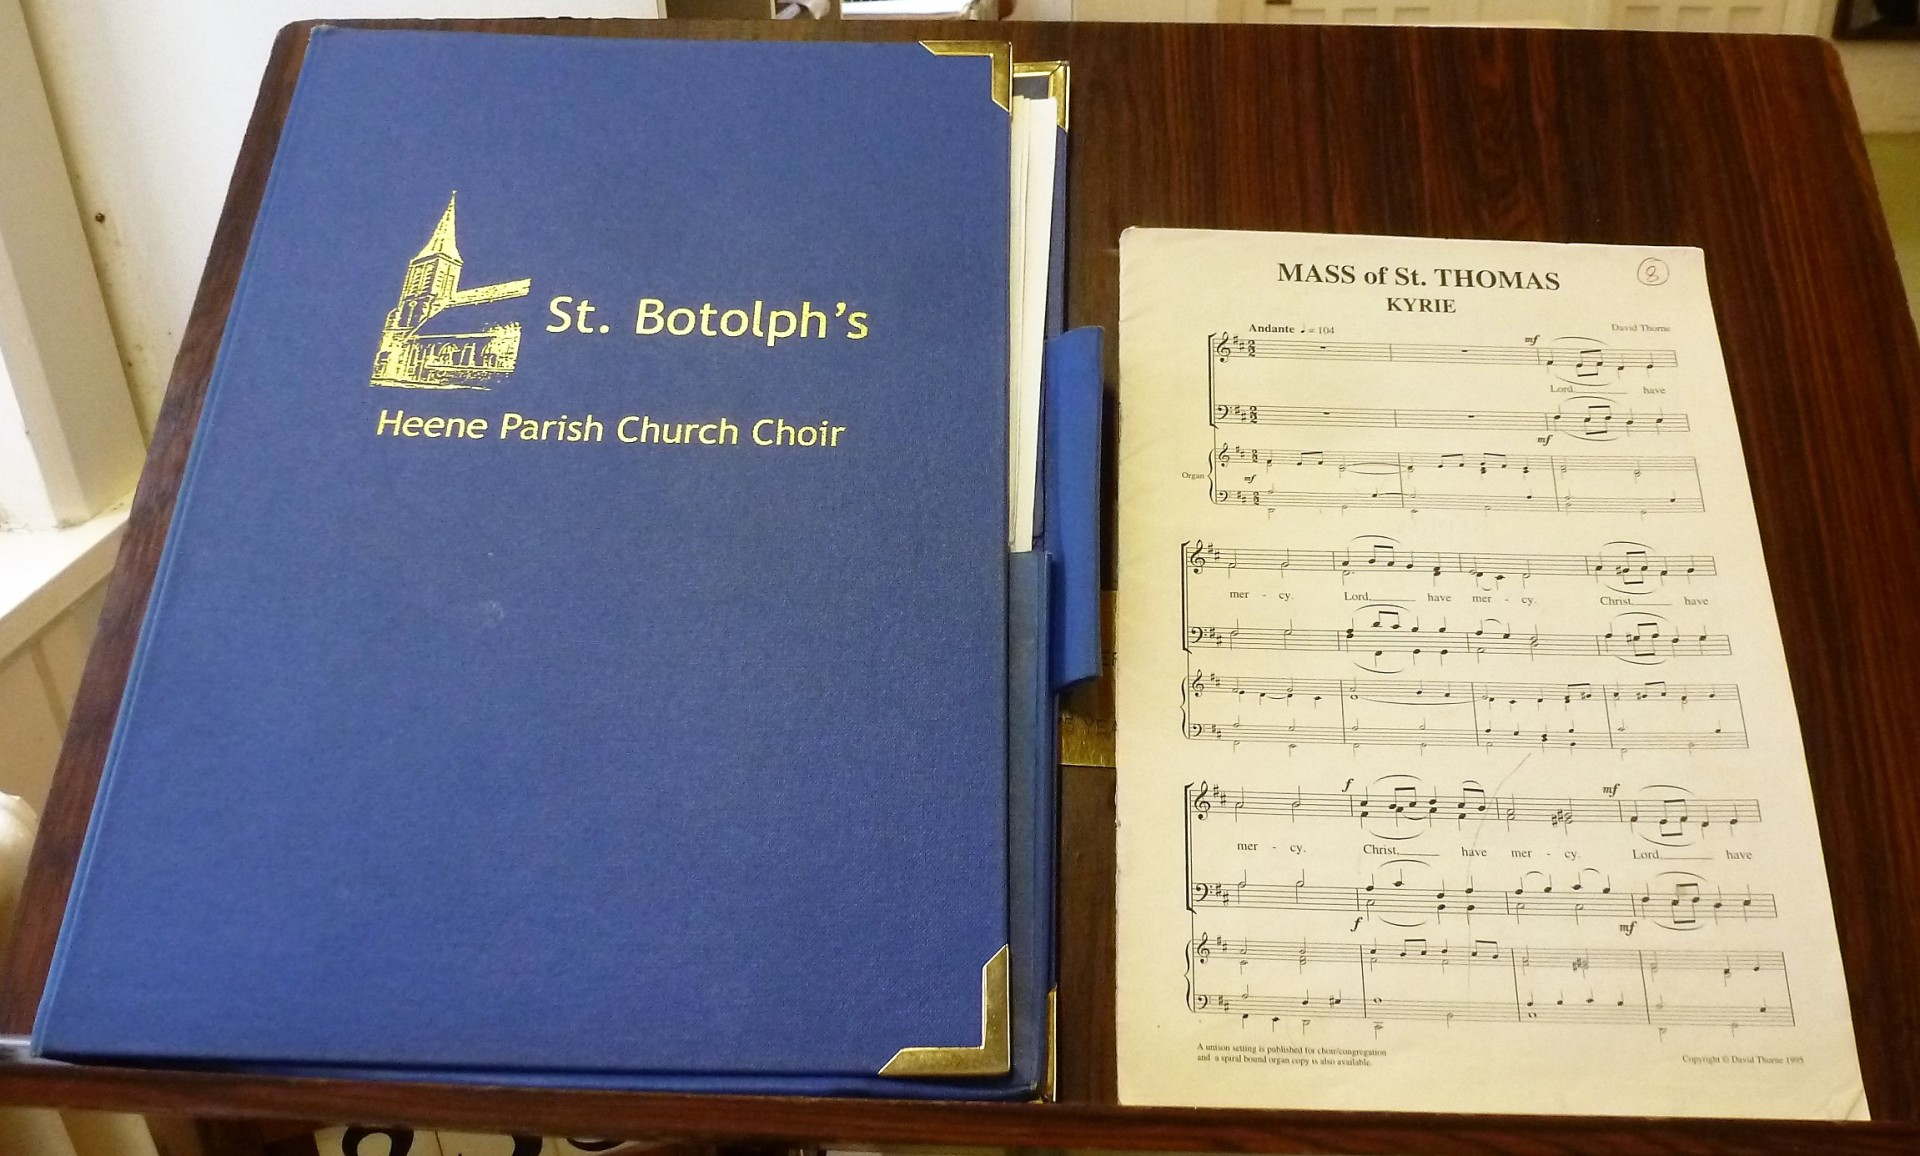 St. Botolph's Church Choir at Portsmouth Cathedral